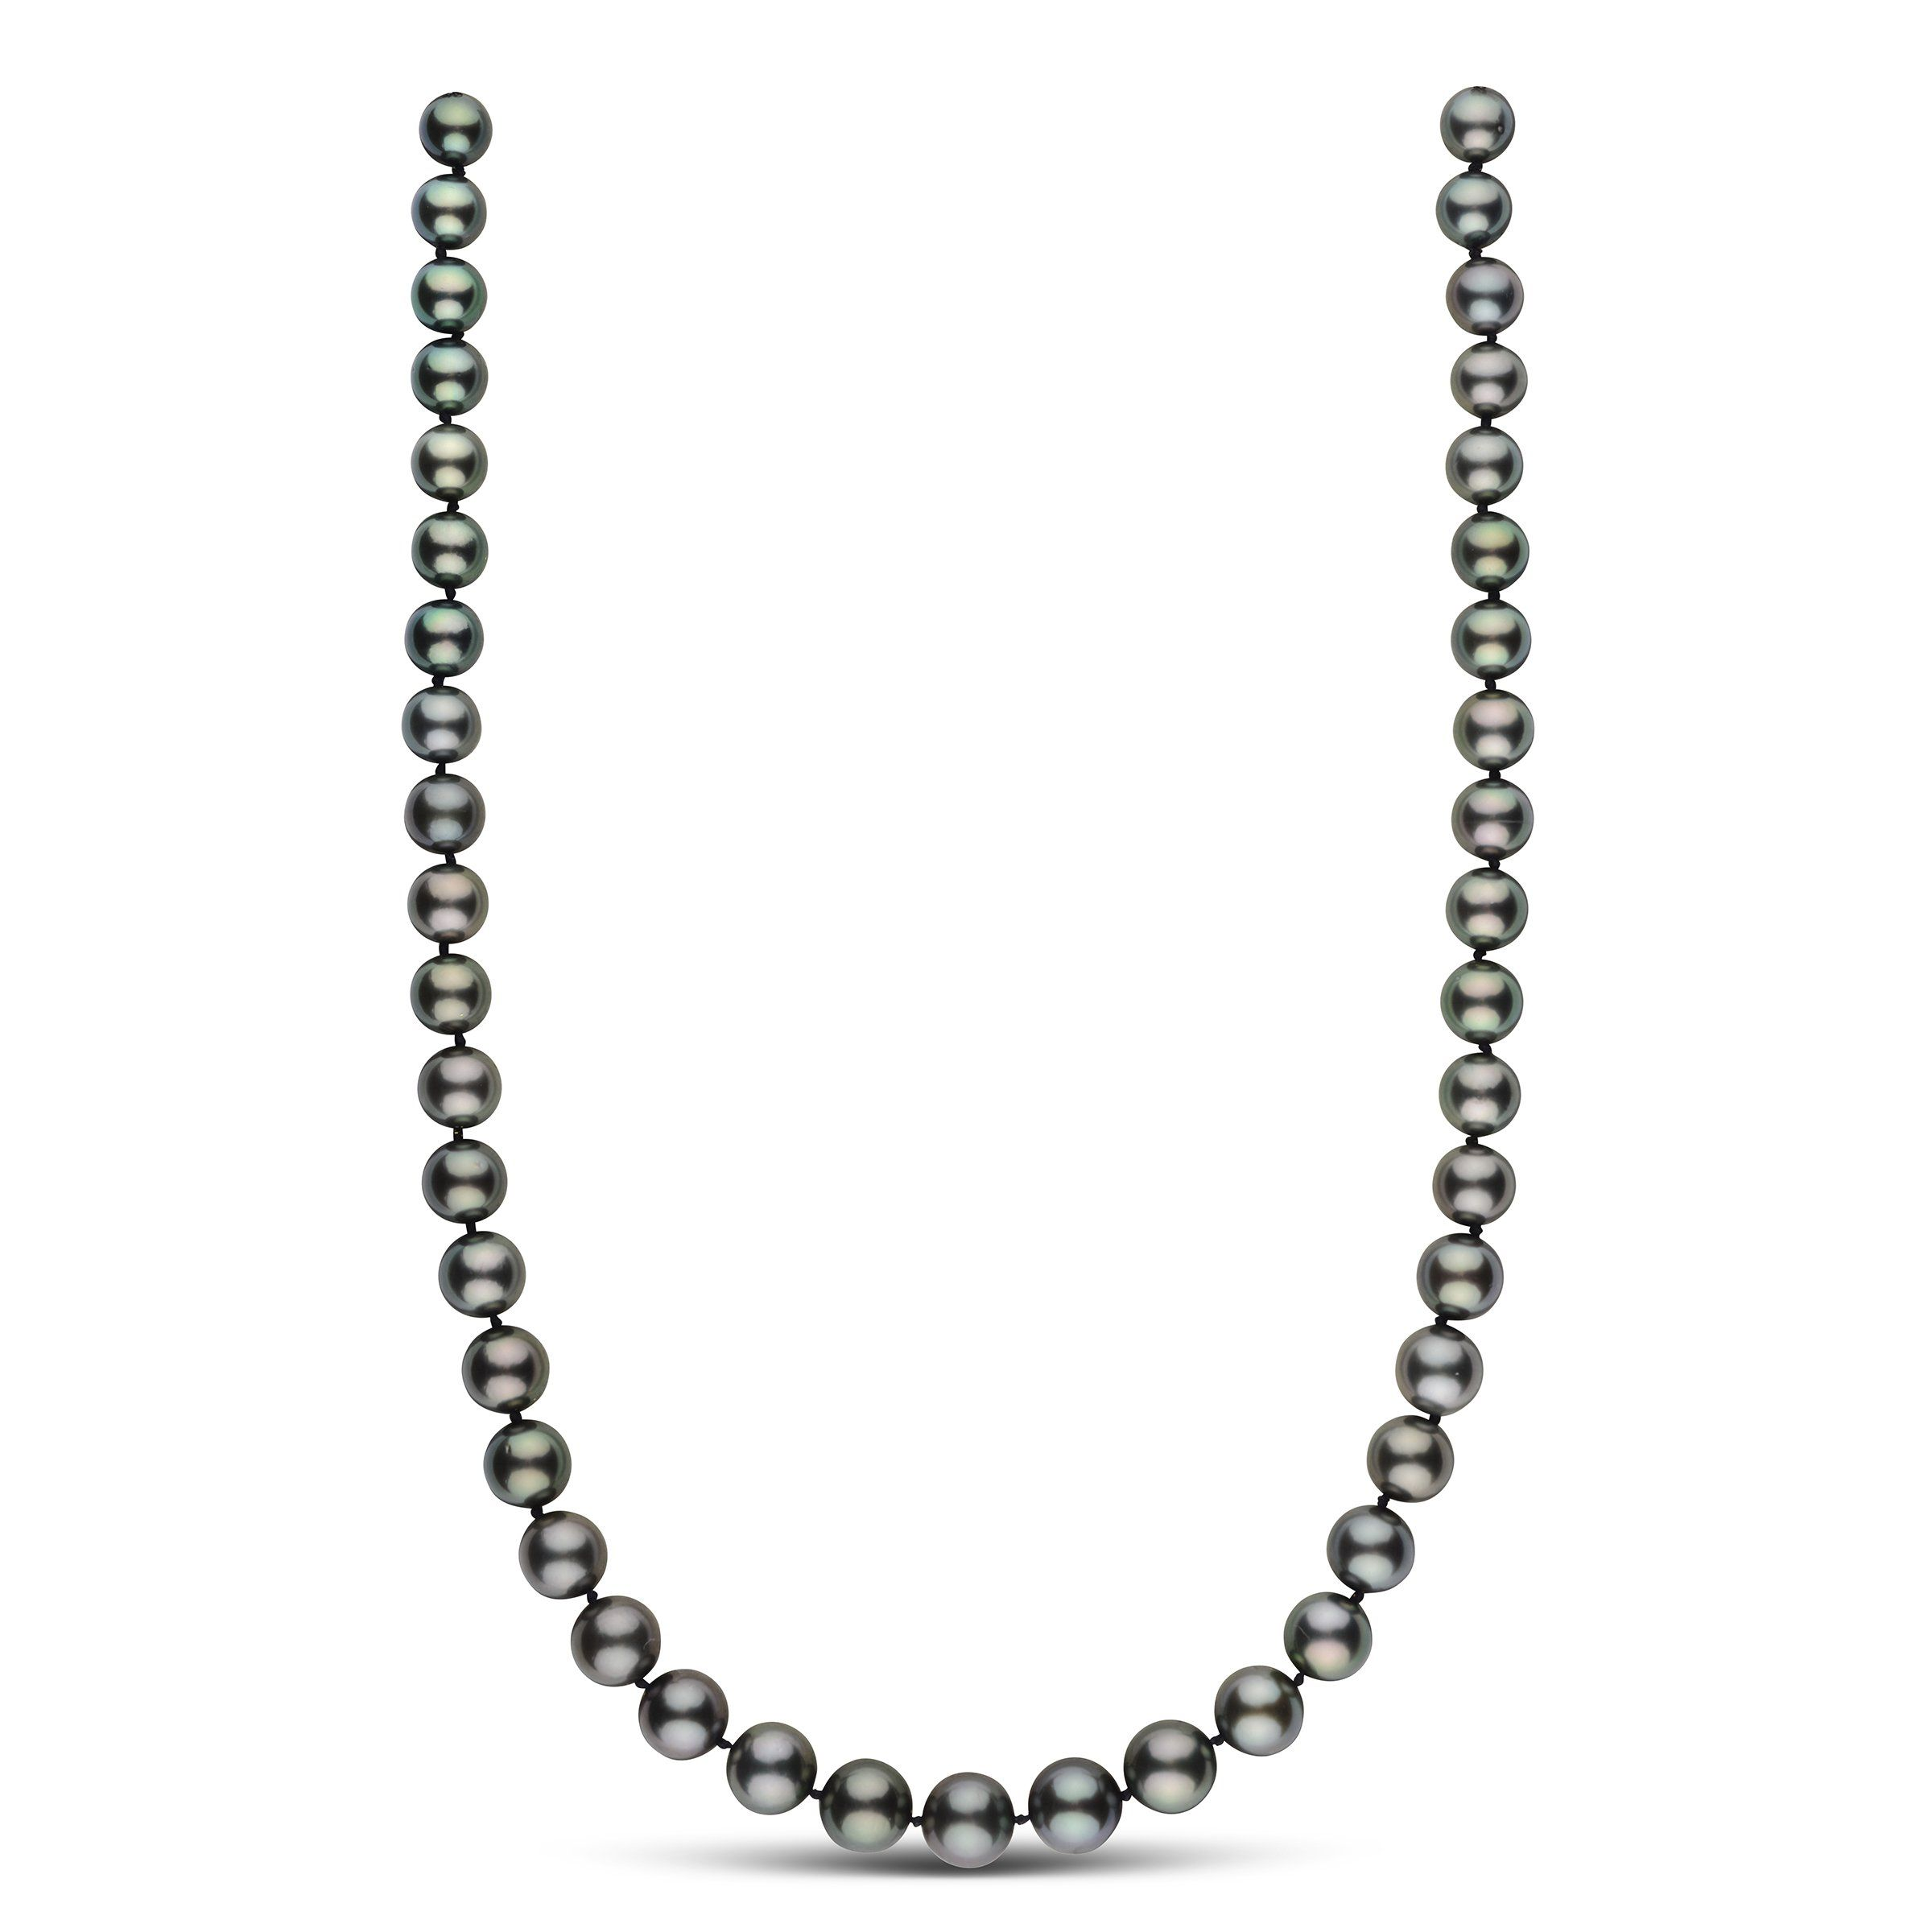 19 inch 8.7-11.0 mm AA+/AAA Round Tahitian Pearl Necklace